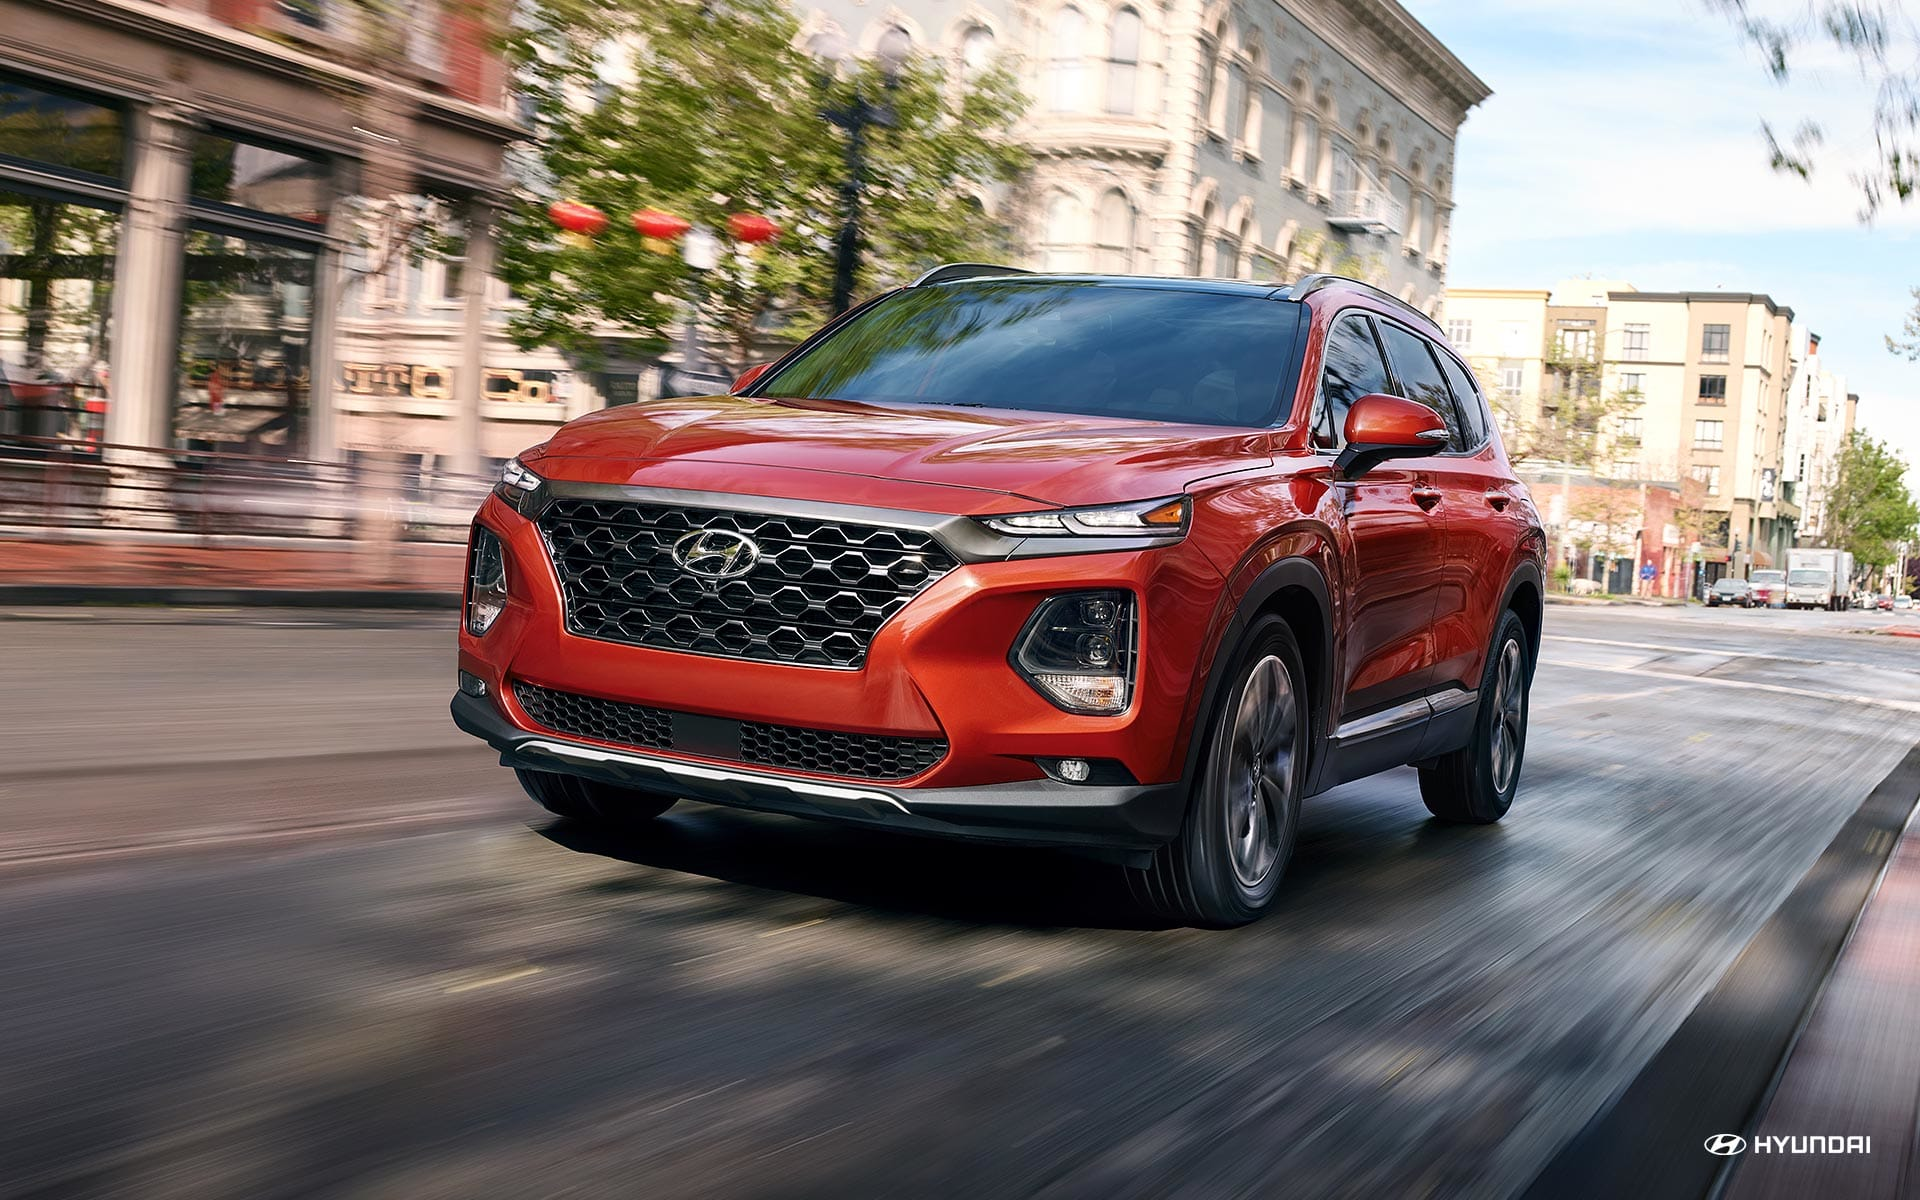 2019 Hyundai Santa Fe Leasing near Woodbridge, VA